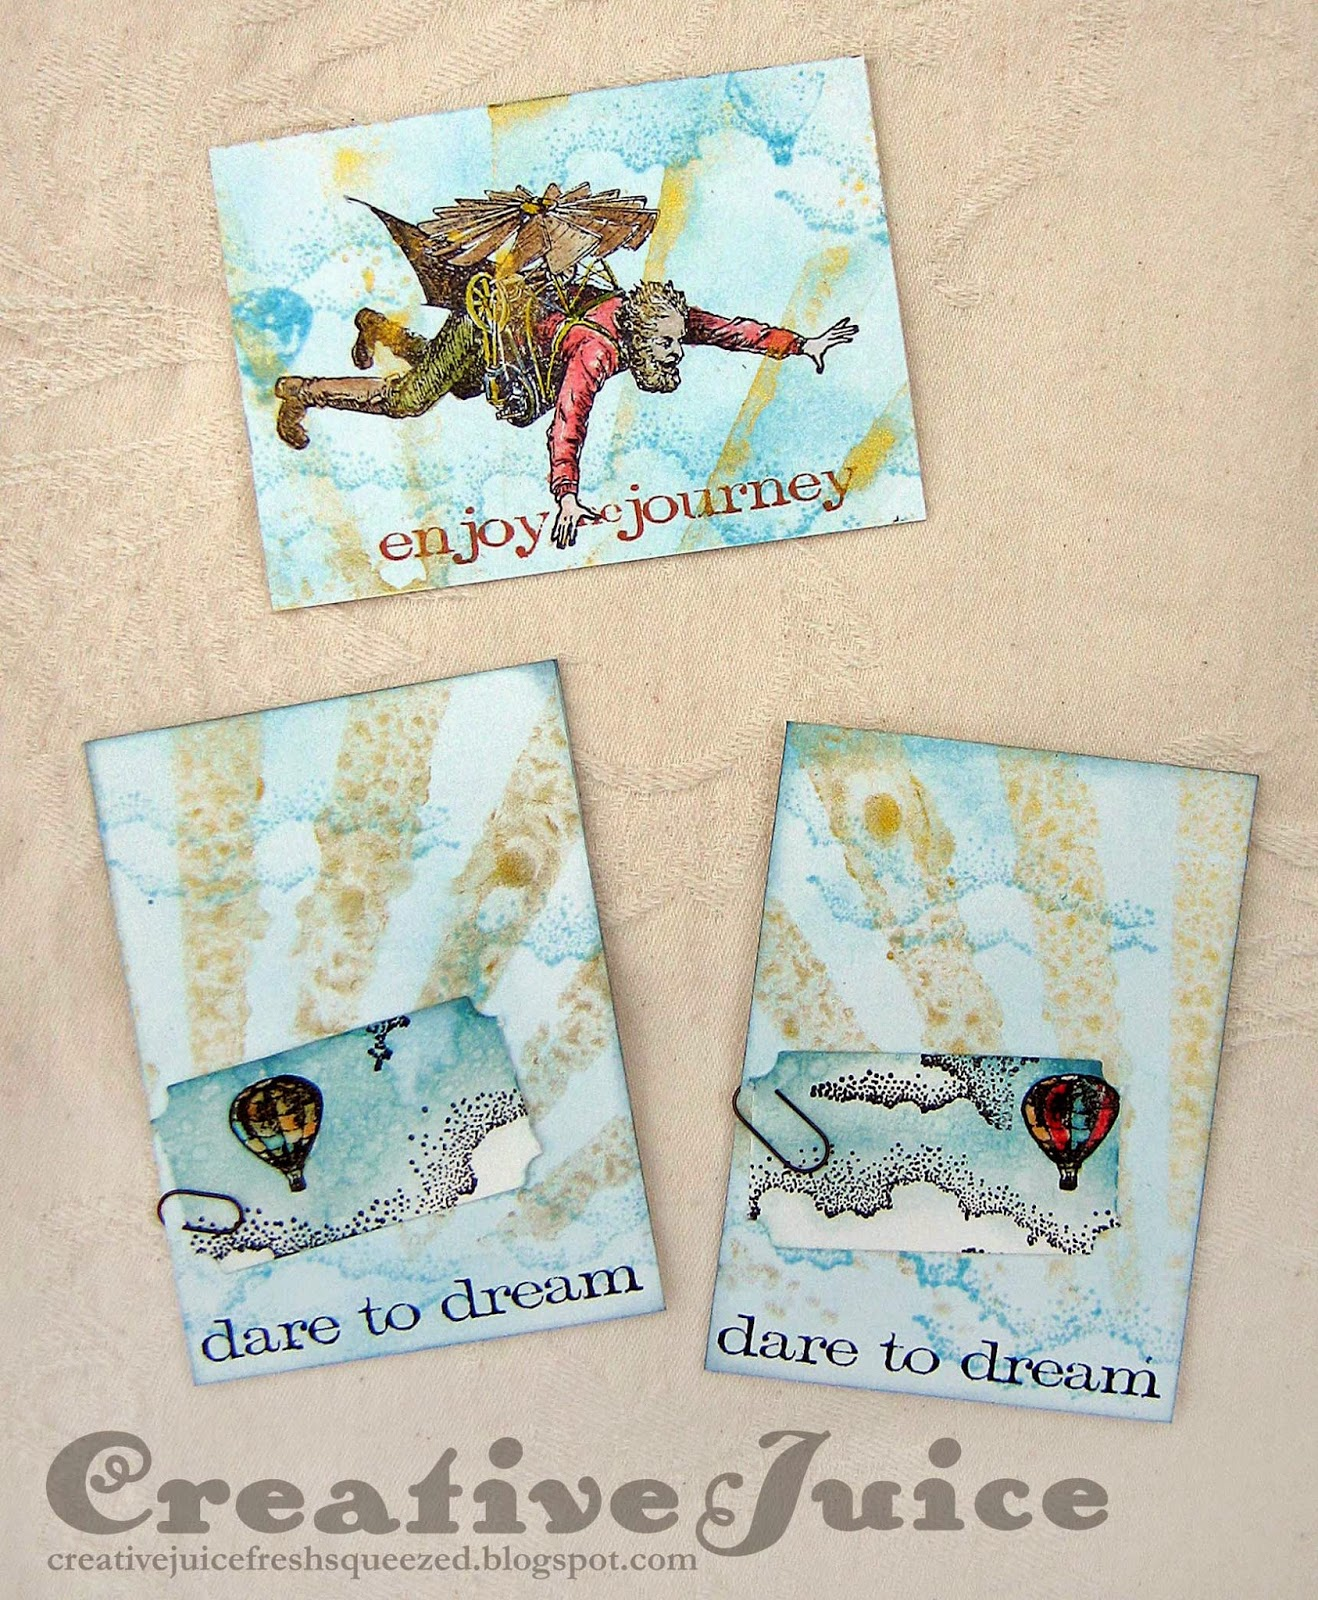 Lisa Hoel, ATCs - http://creativejuicefreshsqueezed.blogspot.com/